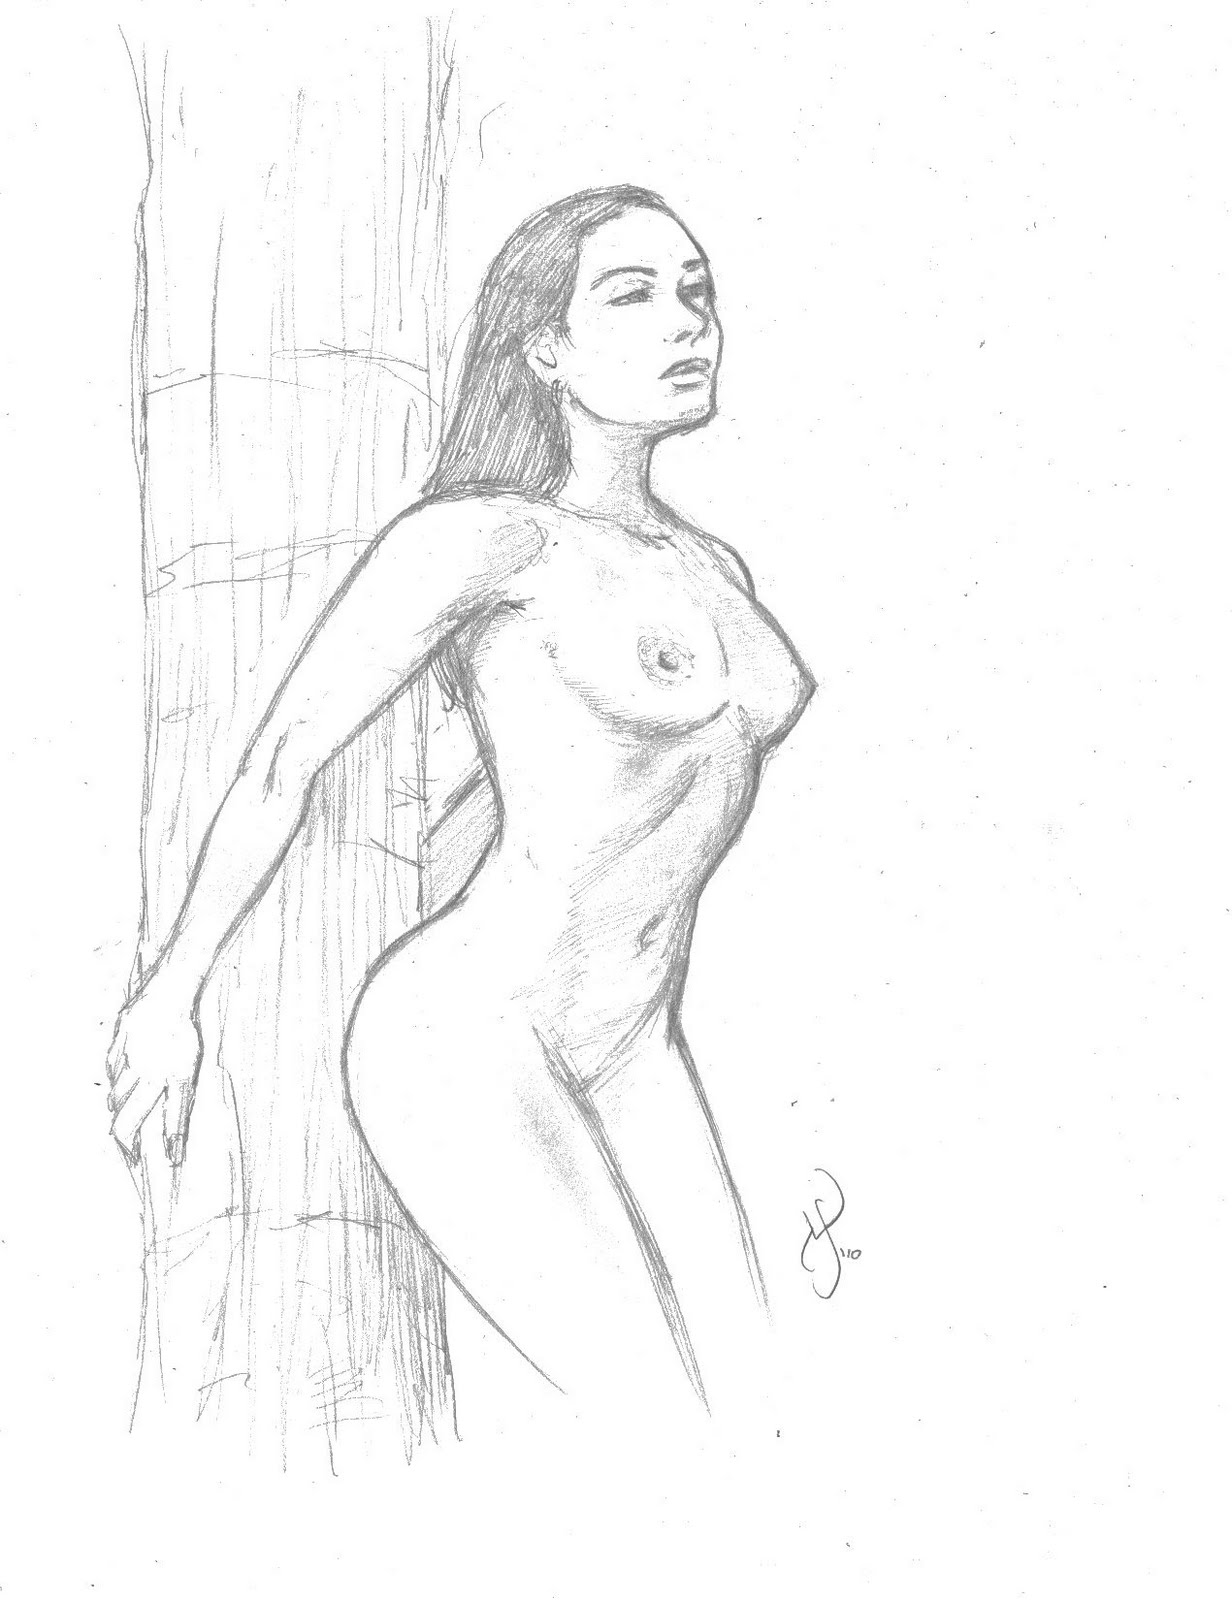 Naked sex penicle sketch nude image